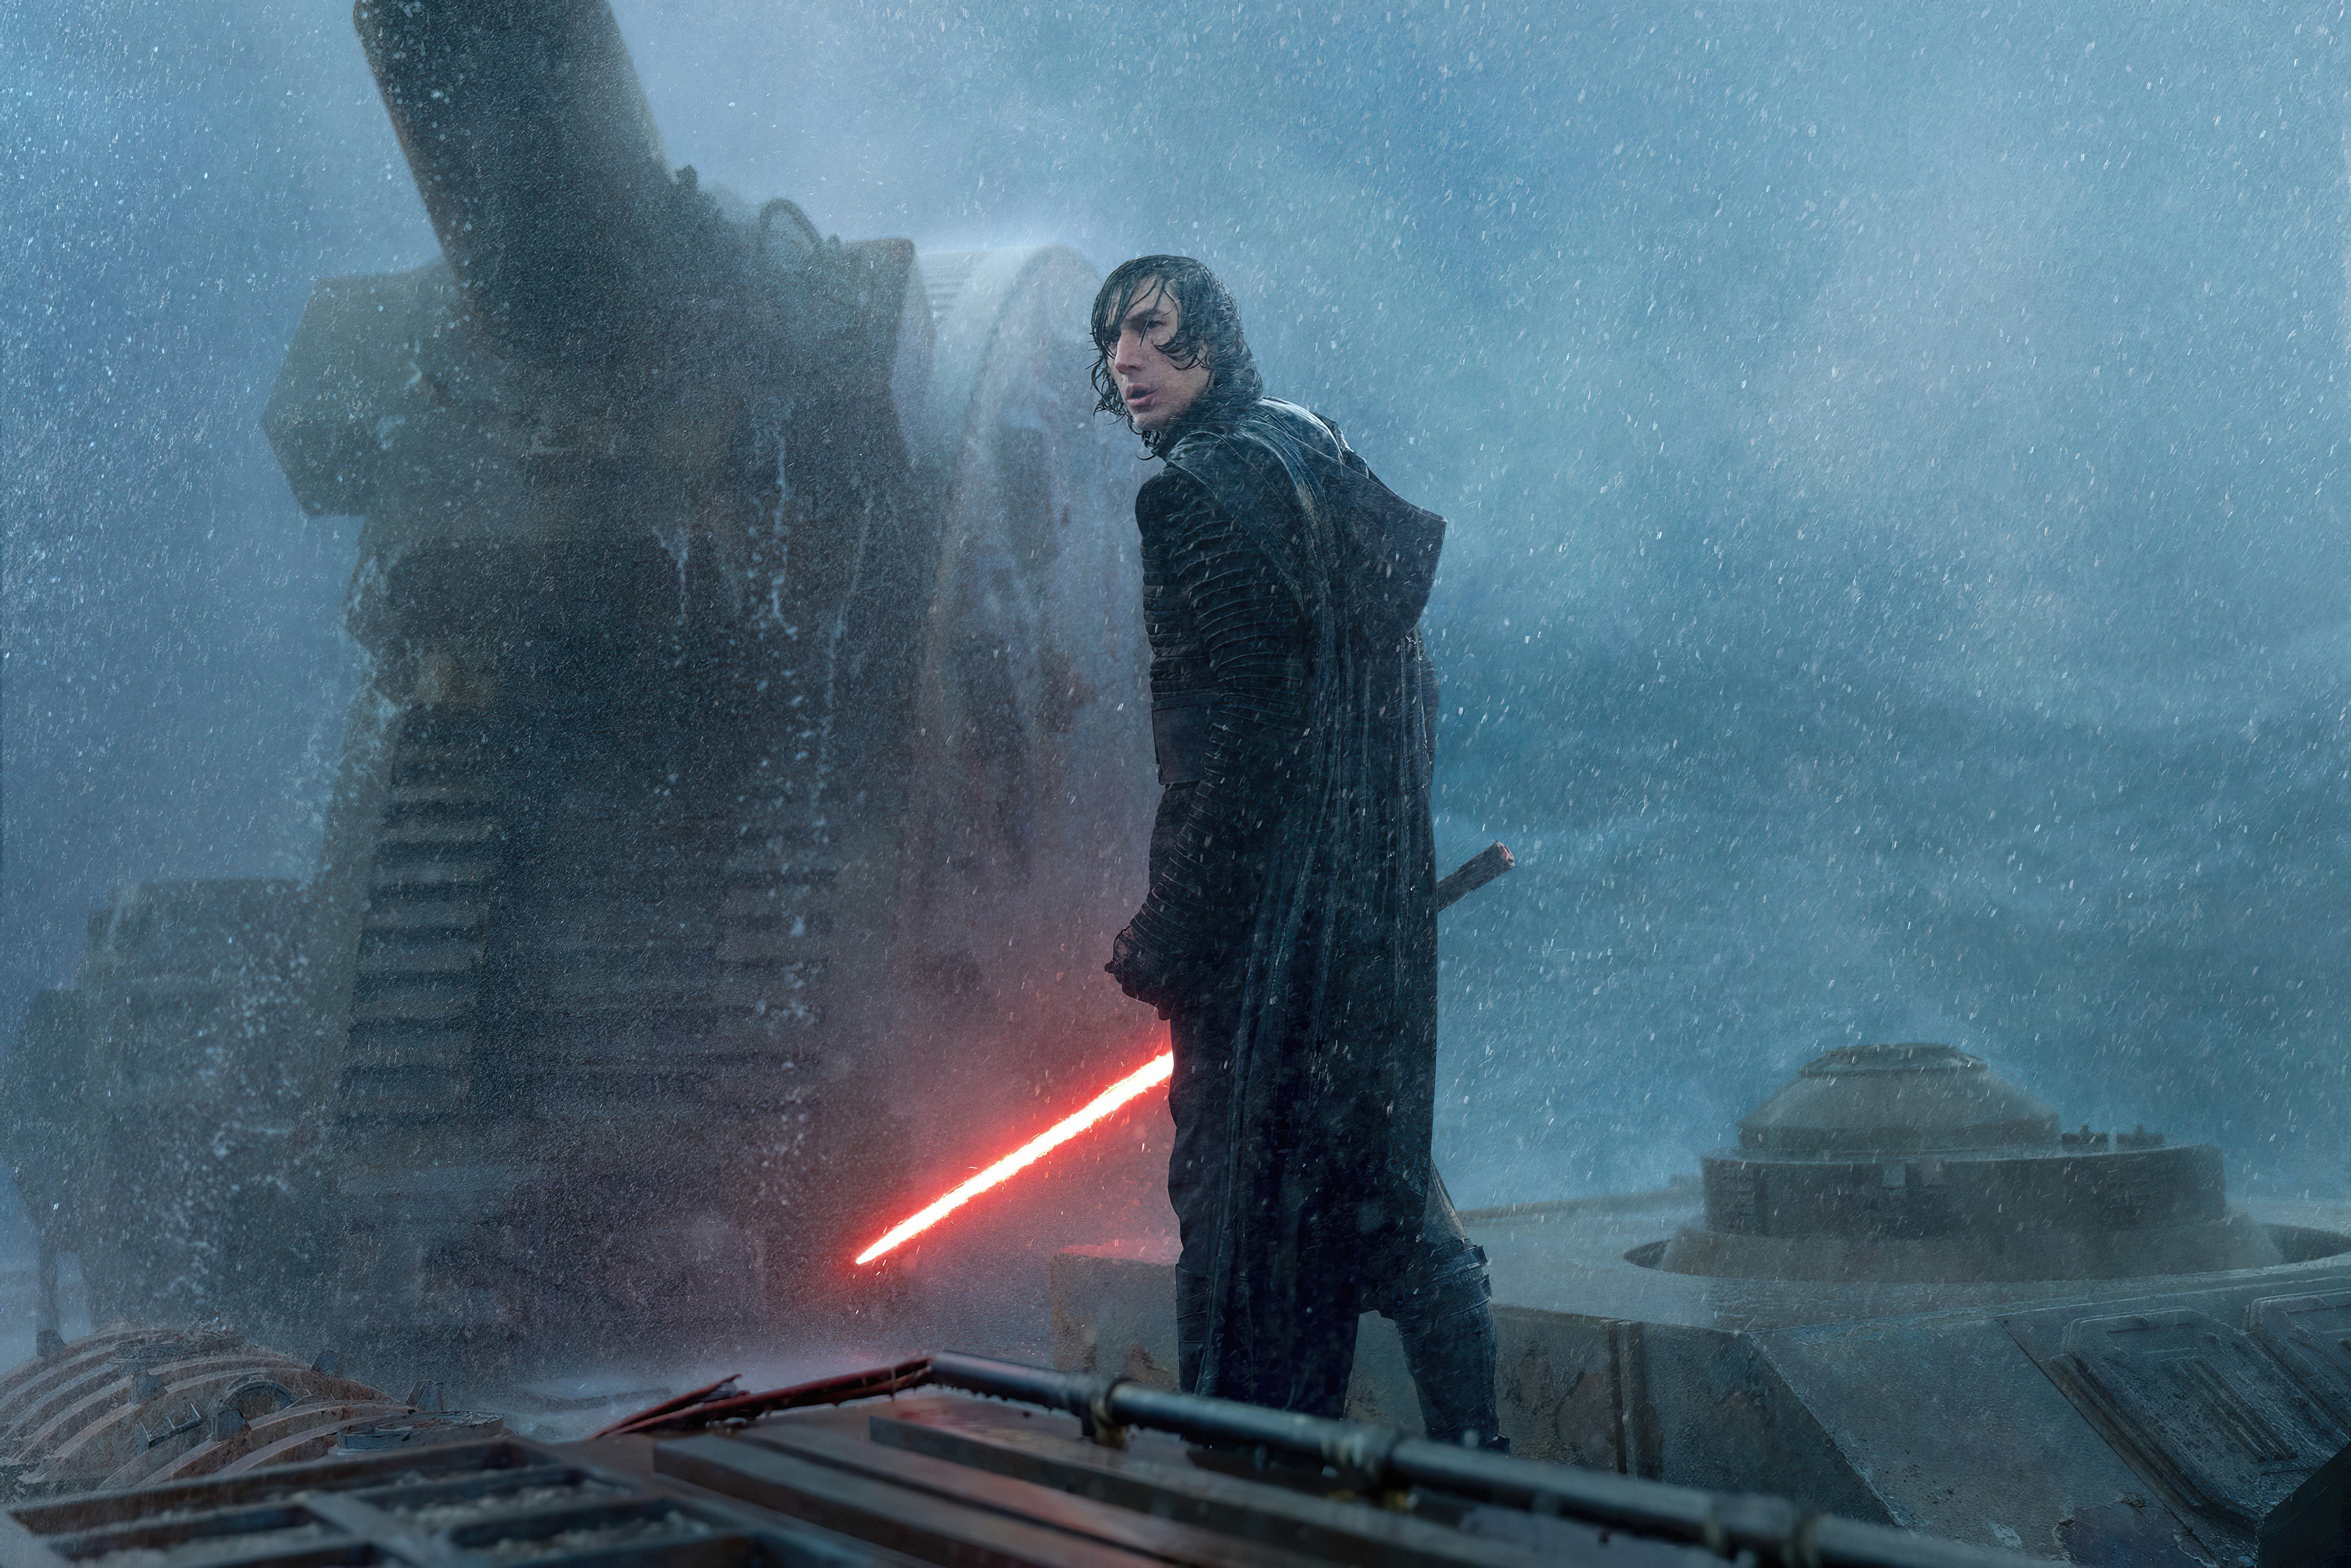 1440x2560 Kylo Ren In Star Wars The Rise Of Skywalker Samsung Galaxy S6 S7 Google Pixel Xl Nexus 6 6p Lg G5 Hd 4k Wallpapers Images Backgrounds Photos And Pictures